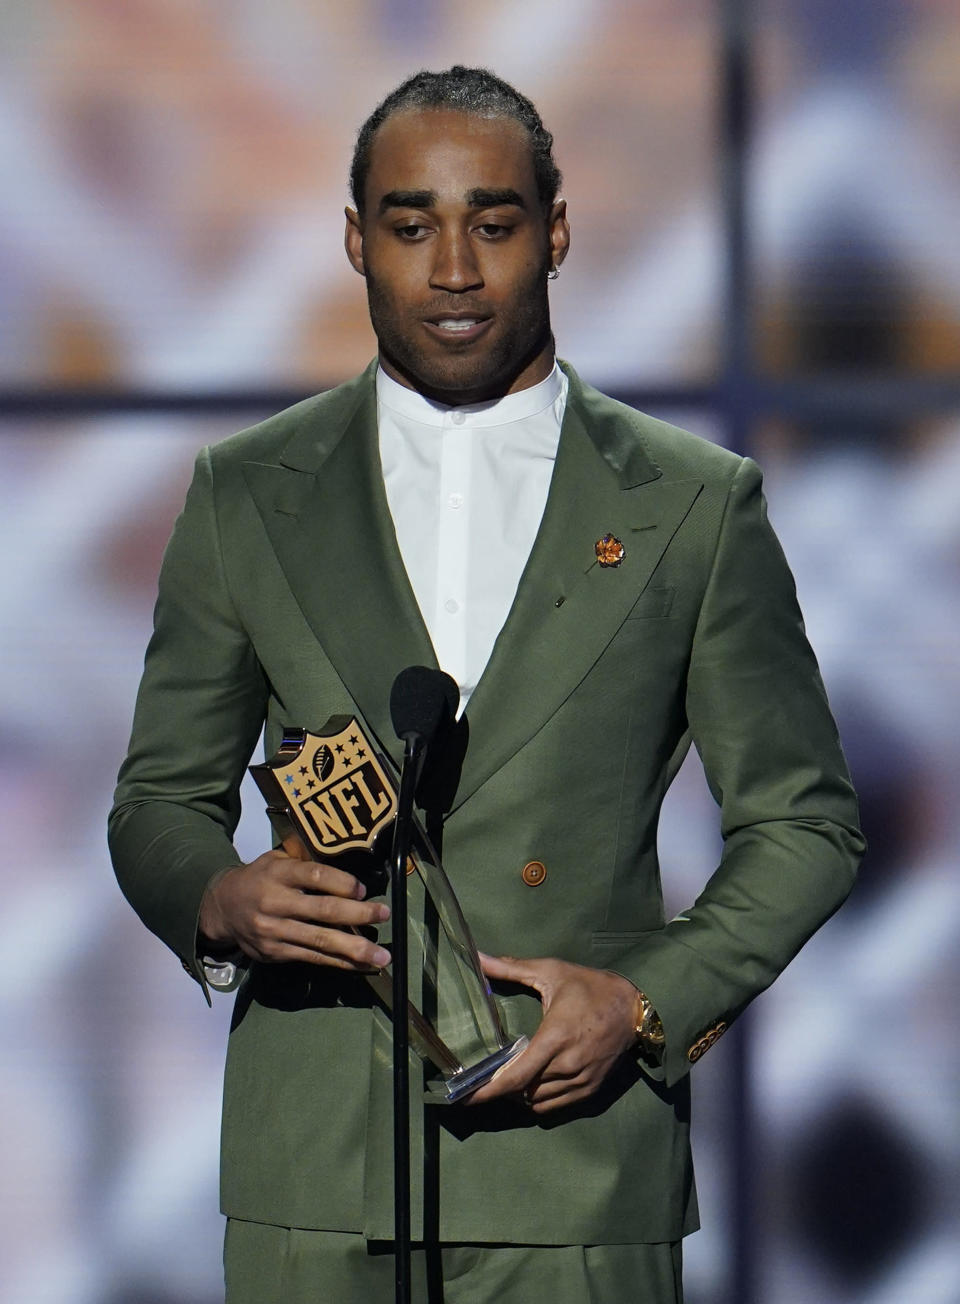 AP Defensive Player of the Year New England Patriots' Stephon Gilmore speaks at the NFL Honors football award show Saturday, Feb. 1, 2020, in Miami. (AP Photo/David J. Phillip)